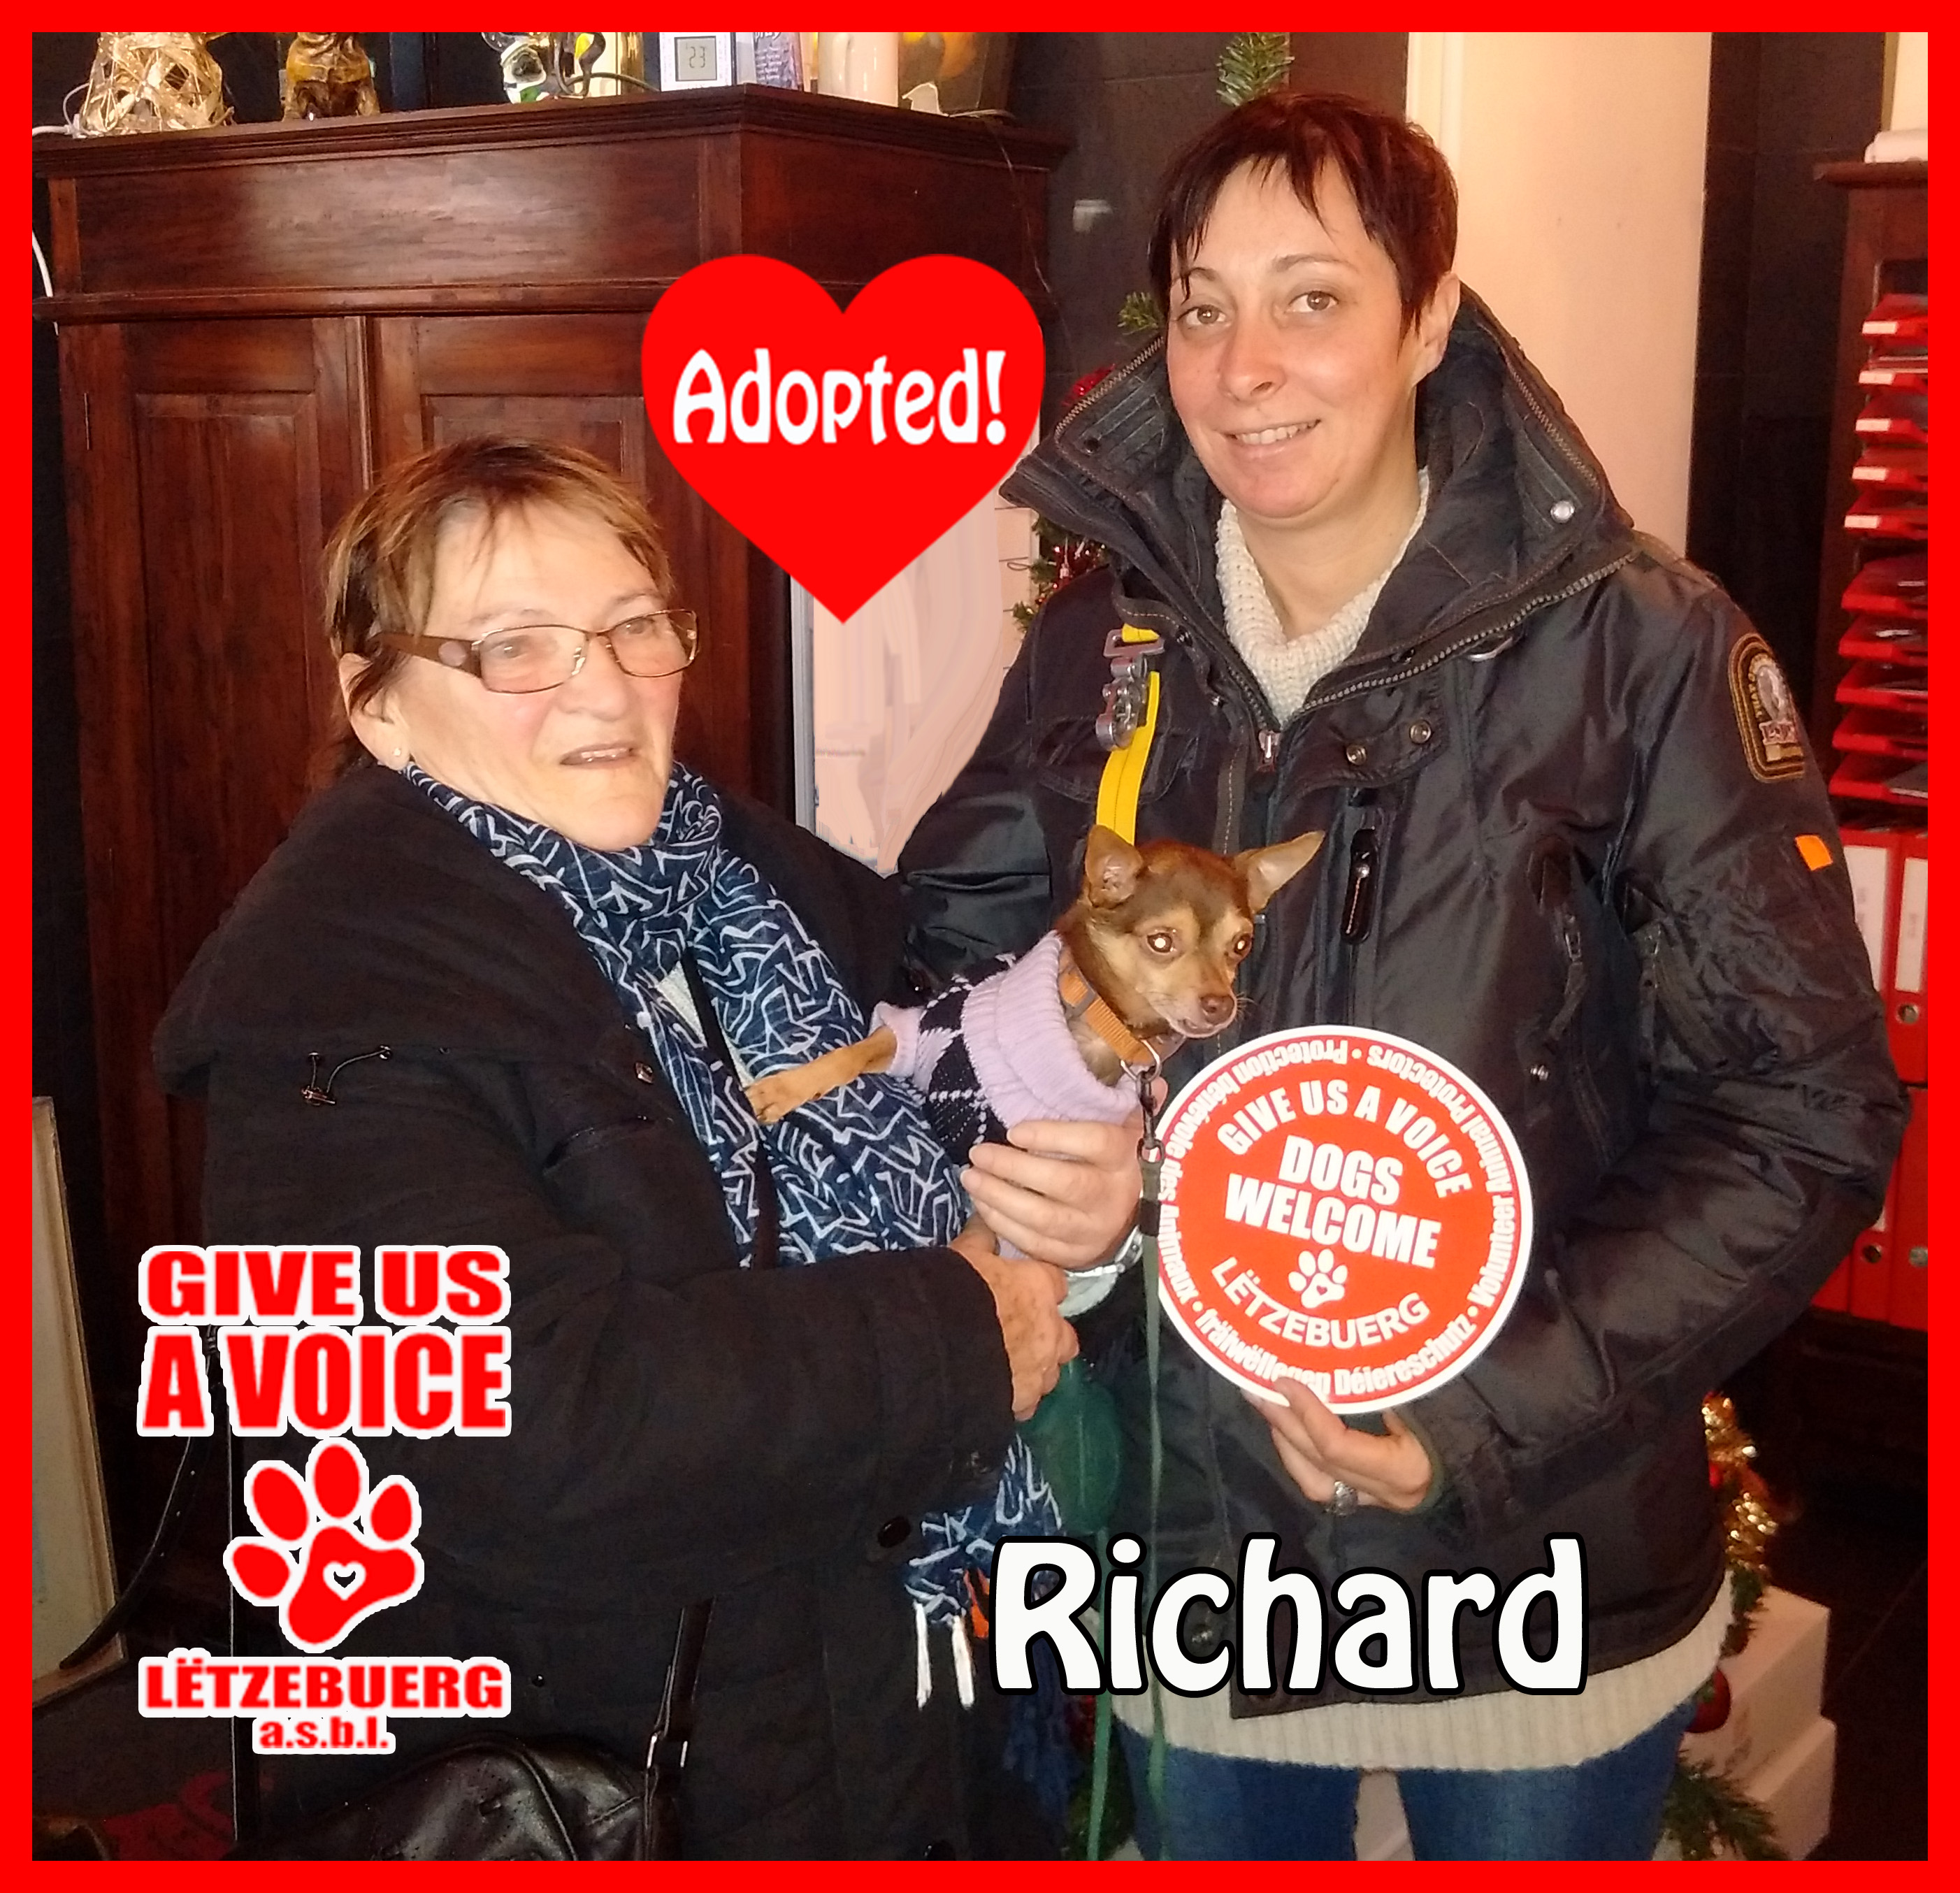 Richard adopted copy